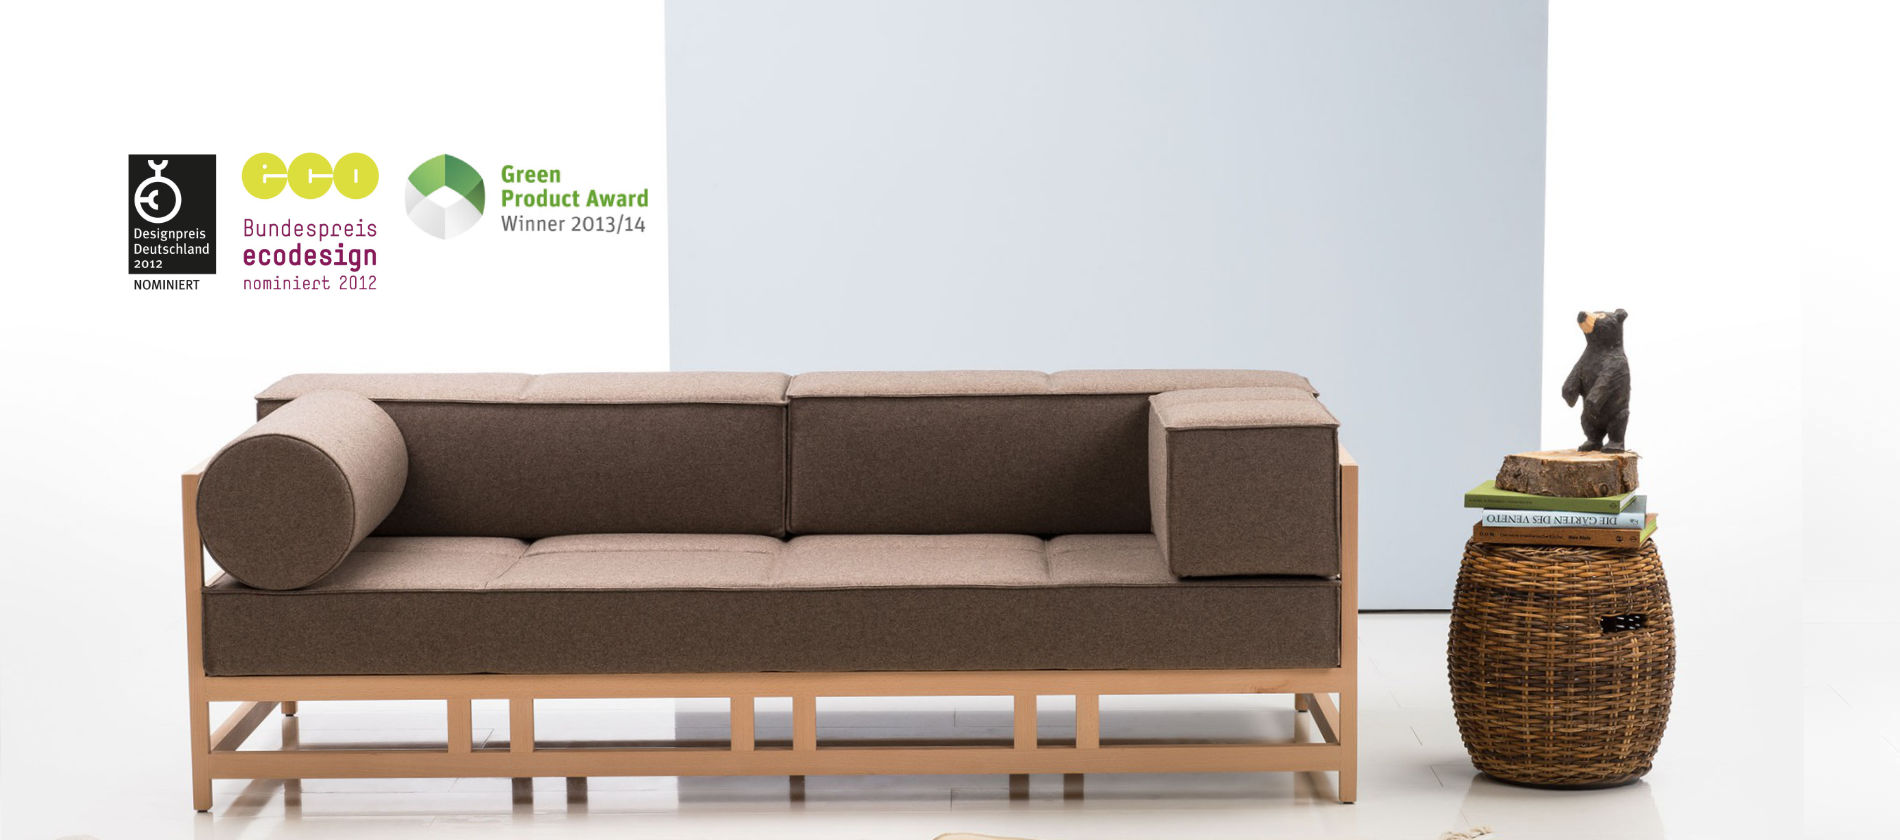 Sofa Bruehl Easy Pieces Oeko vegan Holzgestell